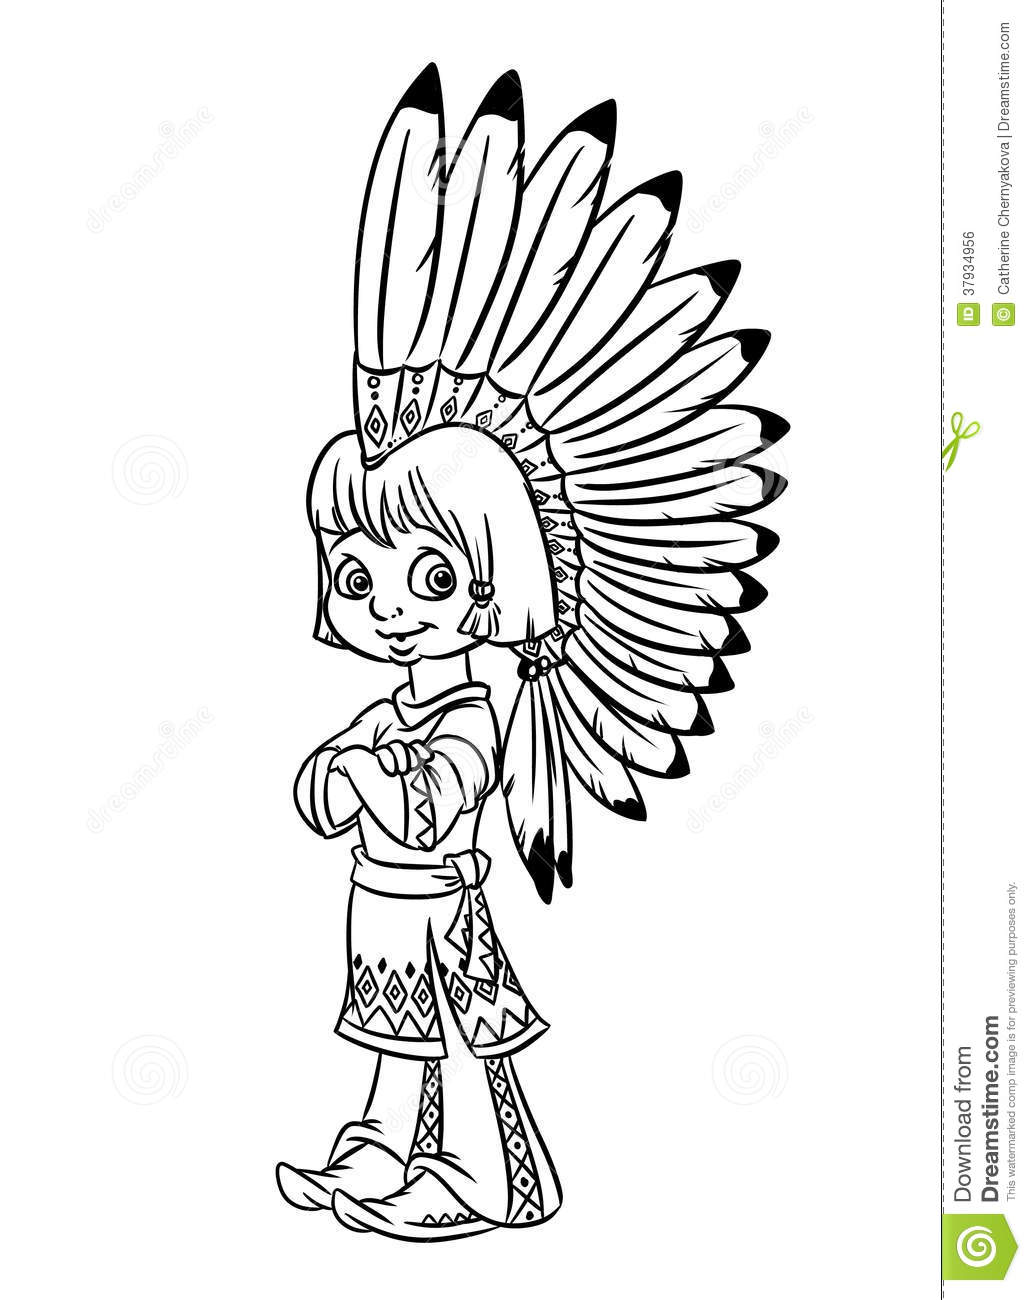 Indian Chief Boy Illustration Coloring Pages Stock Illustration